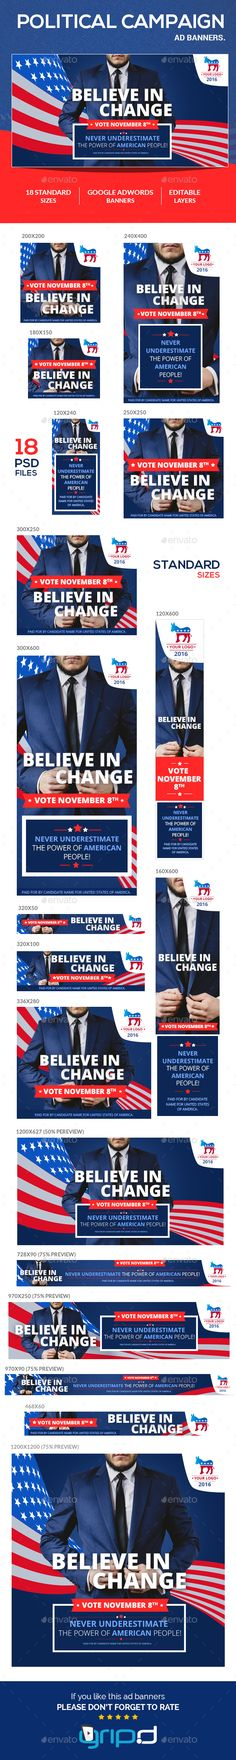 Political Campaign Banner Ads  — PSD Template #promotion #political campaign • Download ➝ https://graphicriver.net/item/political-campaign-banner-ads/18219294?ref=pxcr